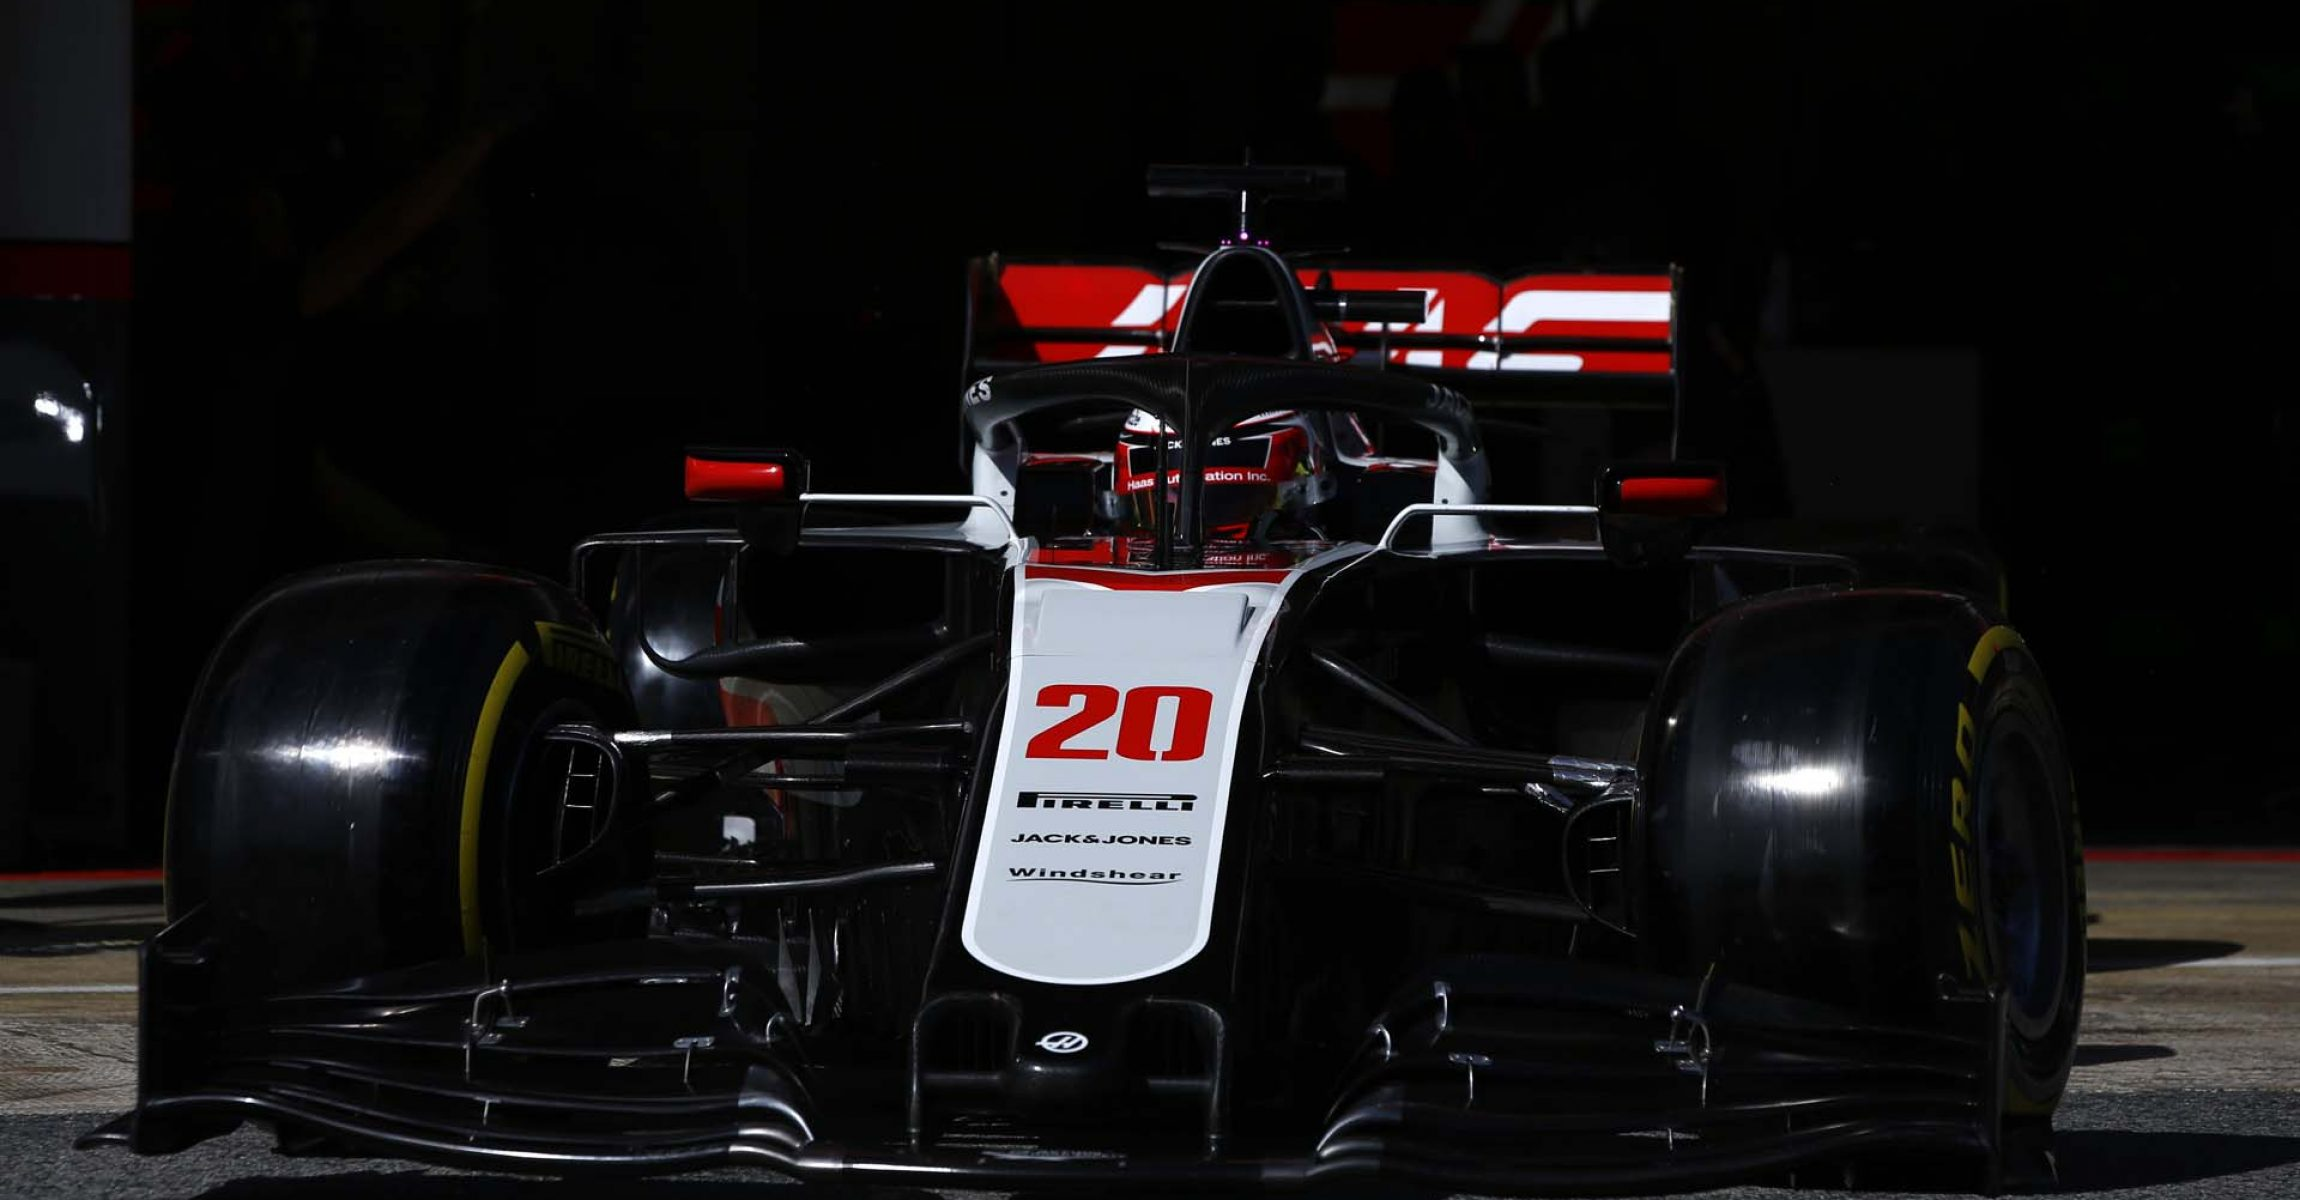 CIRCUIT DE BARCELONA-CATALUNYA, SPAIN - FEBRUARY 27: Kevin Magnussen, Haas VF-20 during the Barcelona February testing II at Circuit de Barcelona-Catalunya on February 27, 2020 in Circuit de Barcelona-Catalunya, Spain. (Photo by Andy Hone / LAT Images)